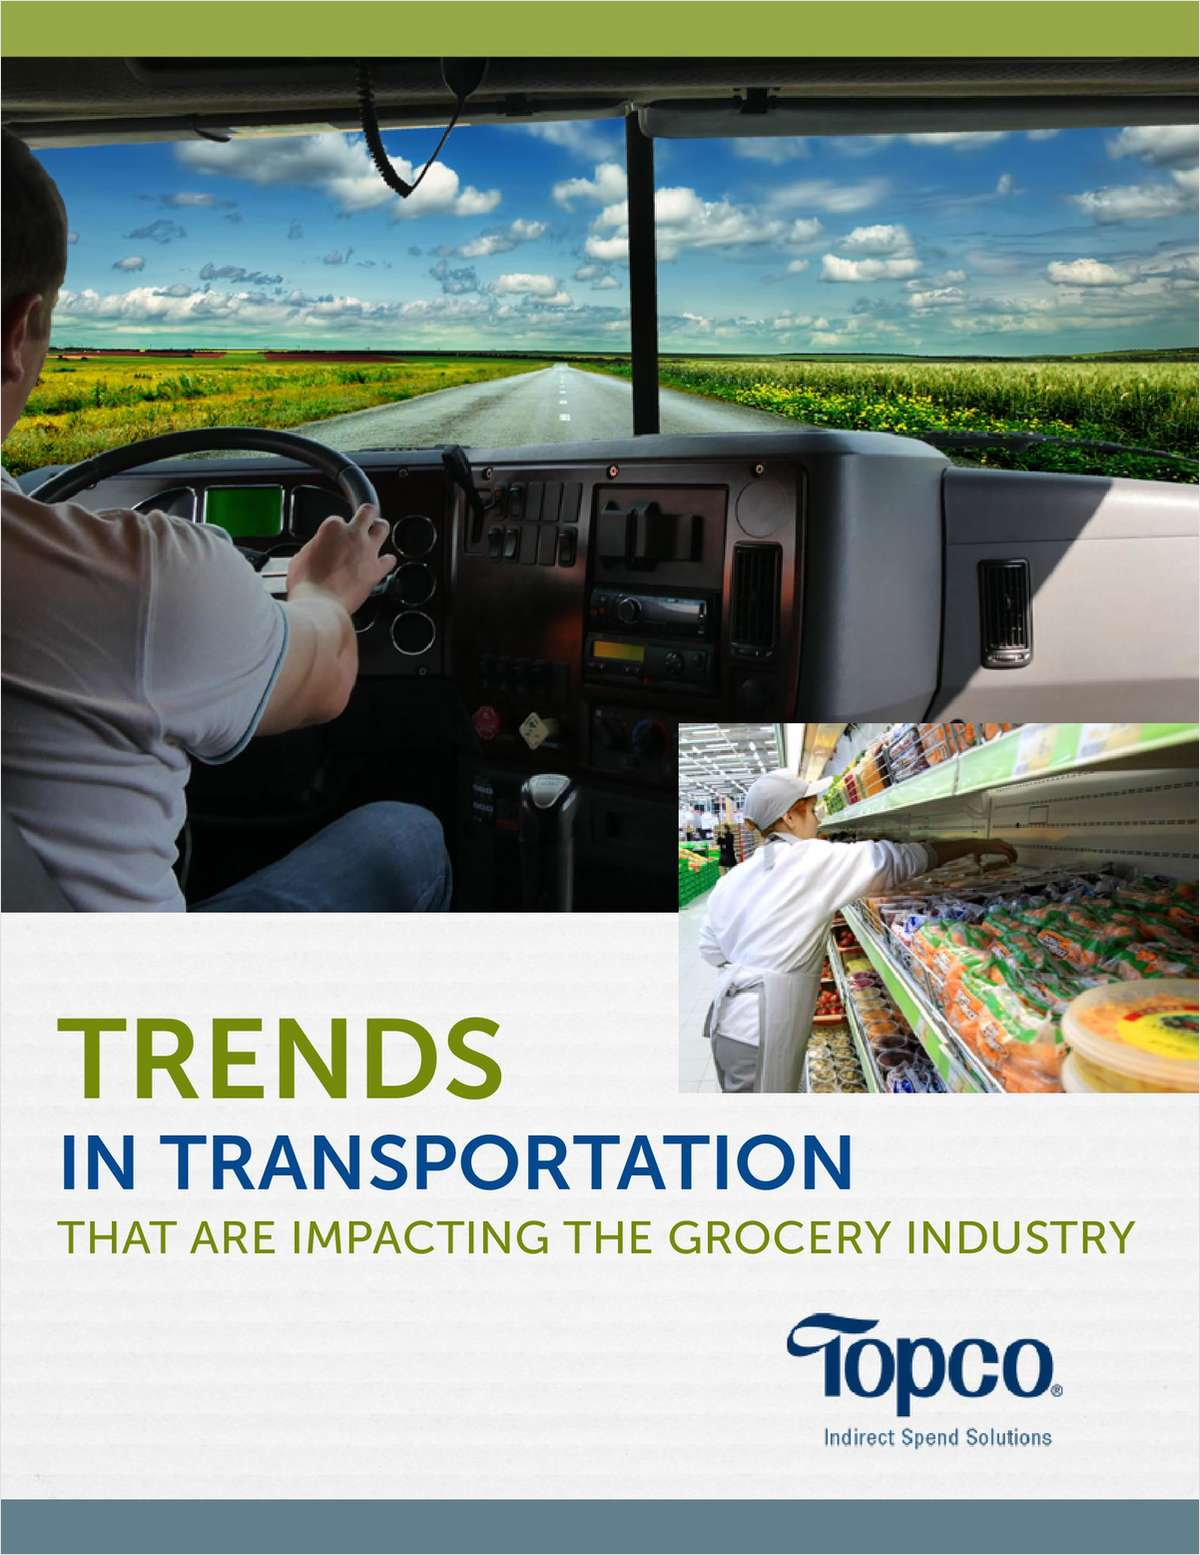 Trends in Transportation That Are Impacting the Grocery Industry